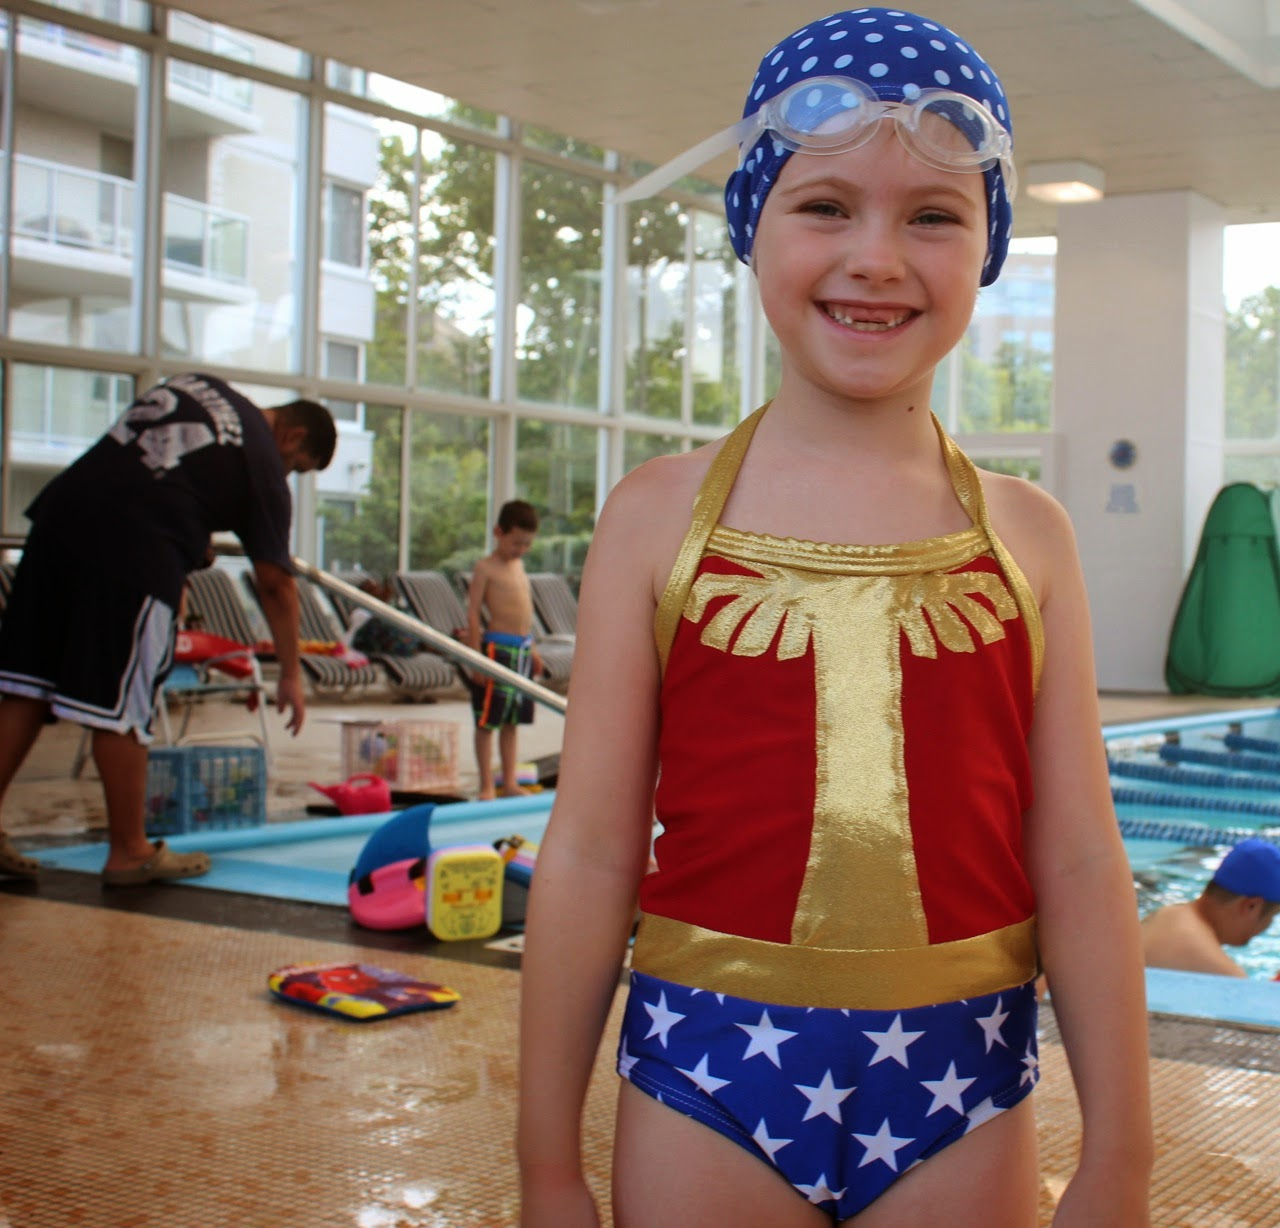 Beau Baby Finished Project Wonder Woman Swimsuit